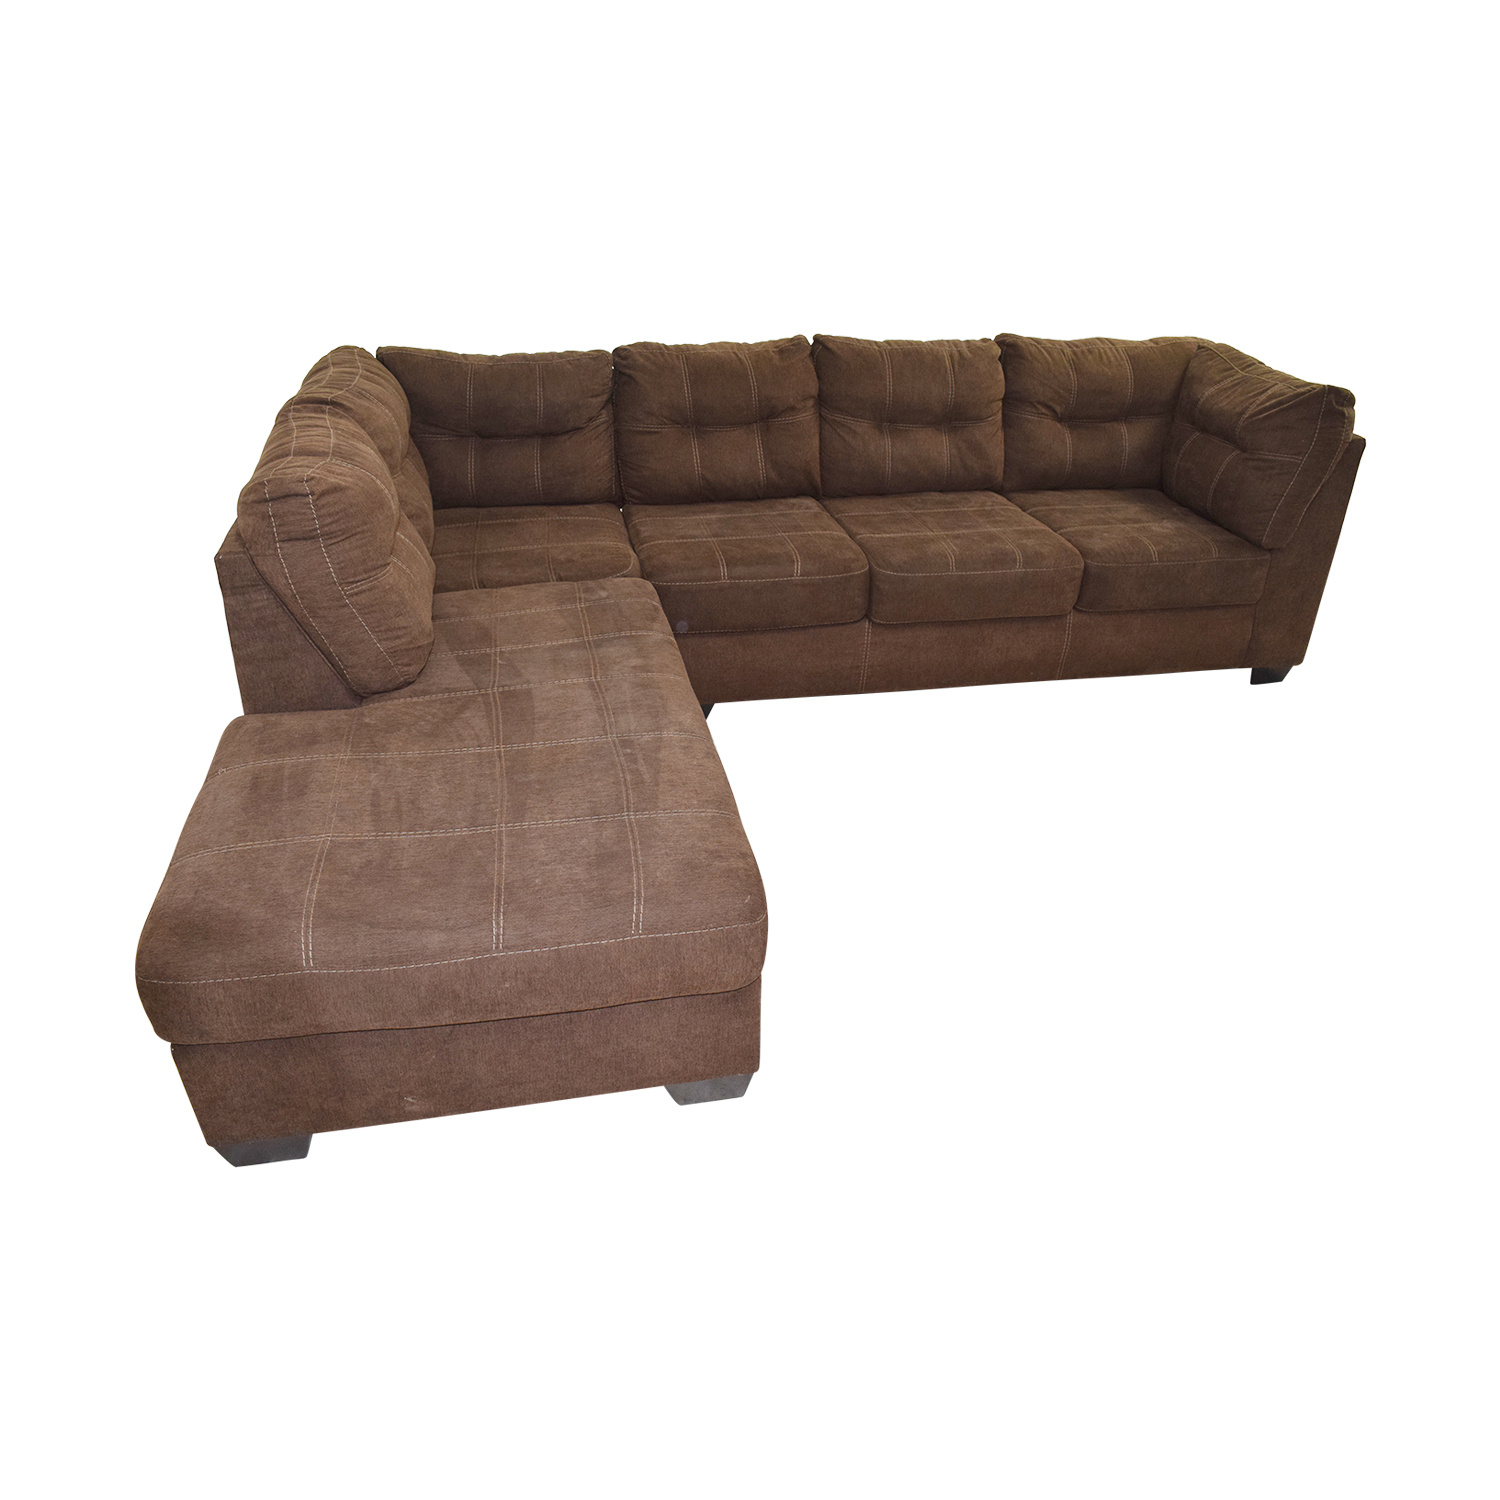 Brown L Shaped Chaise Sectional Sofa